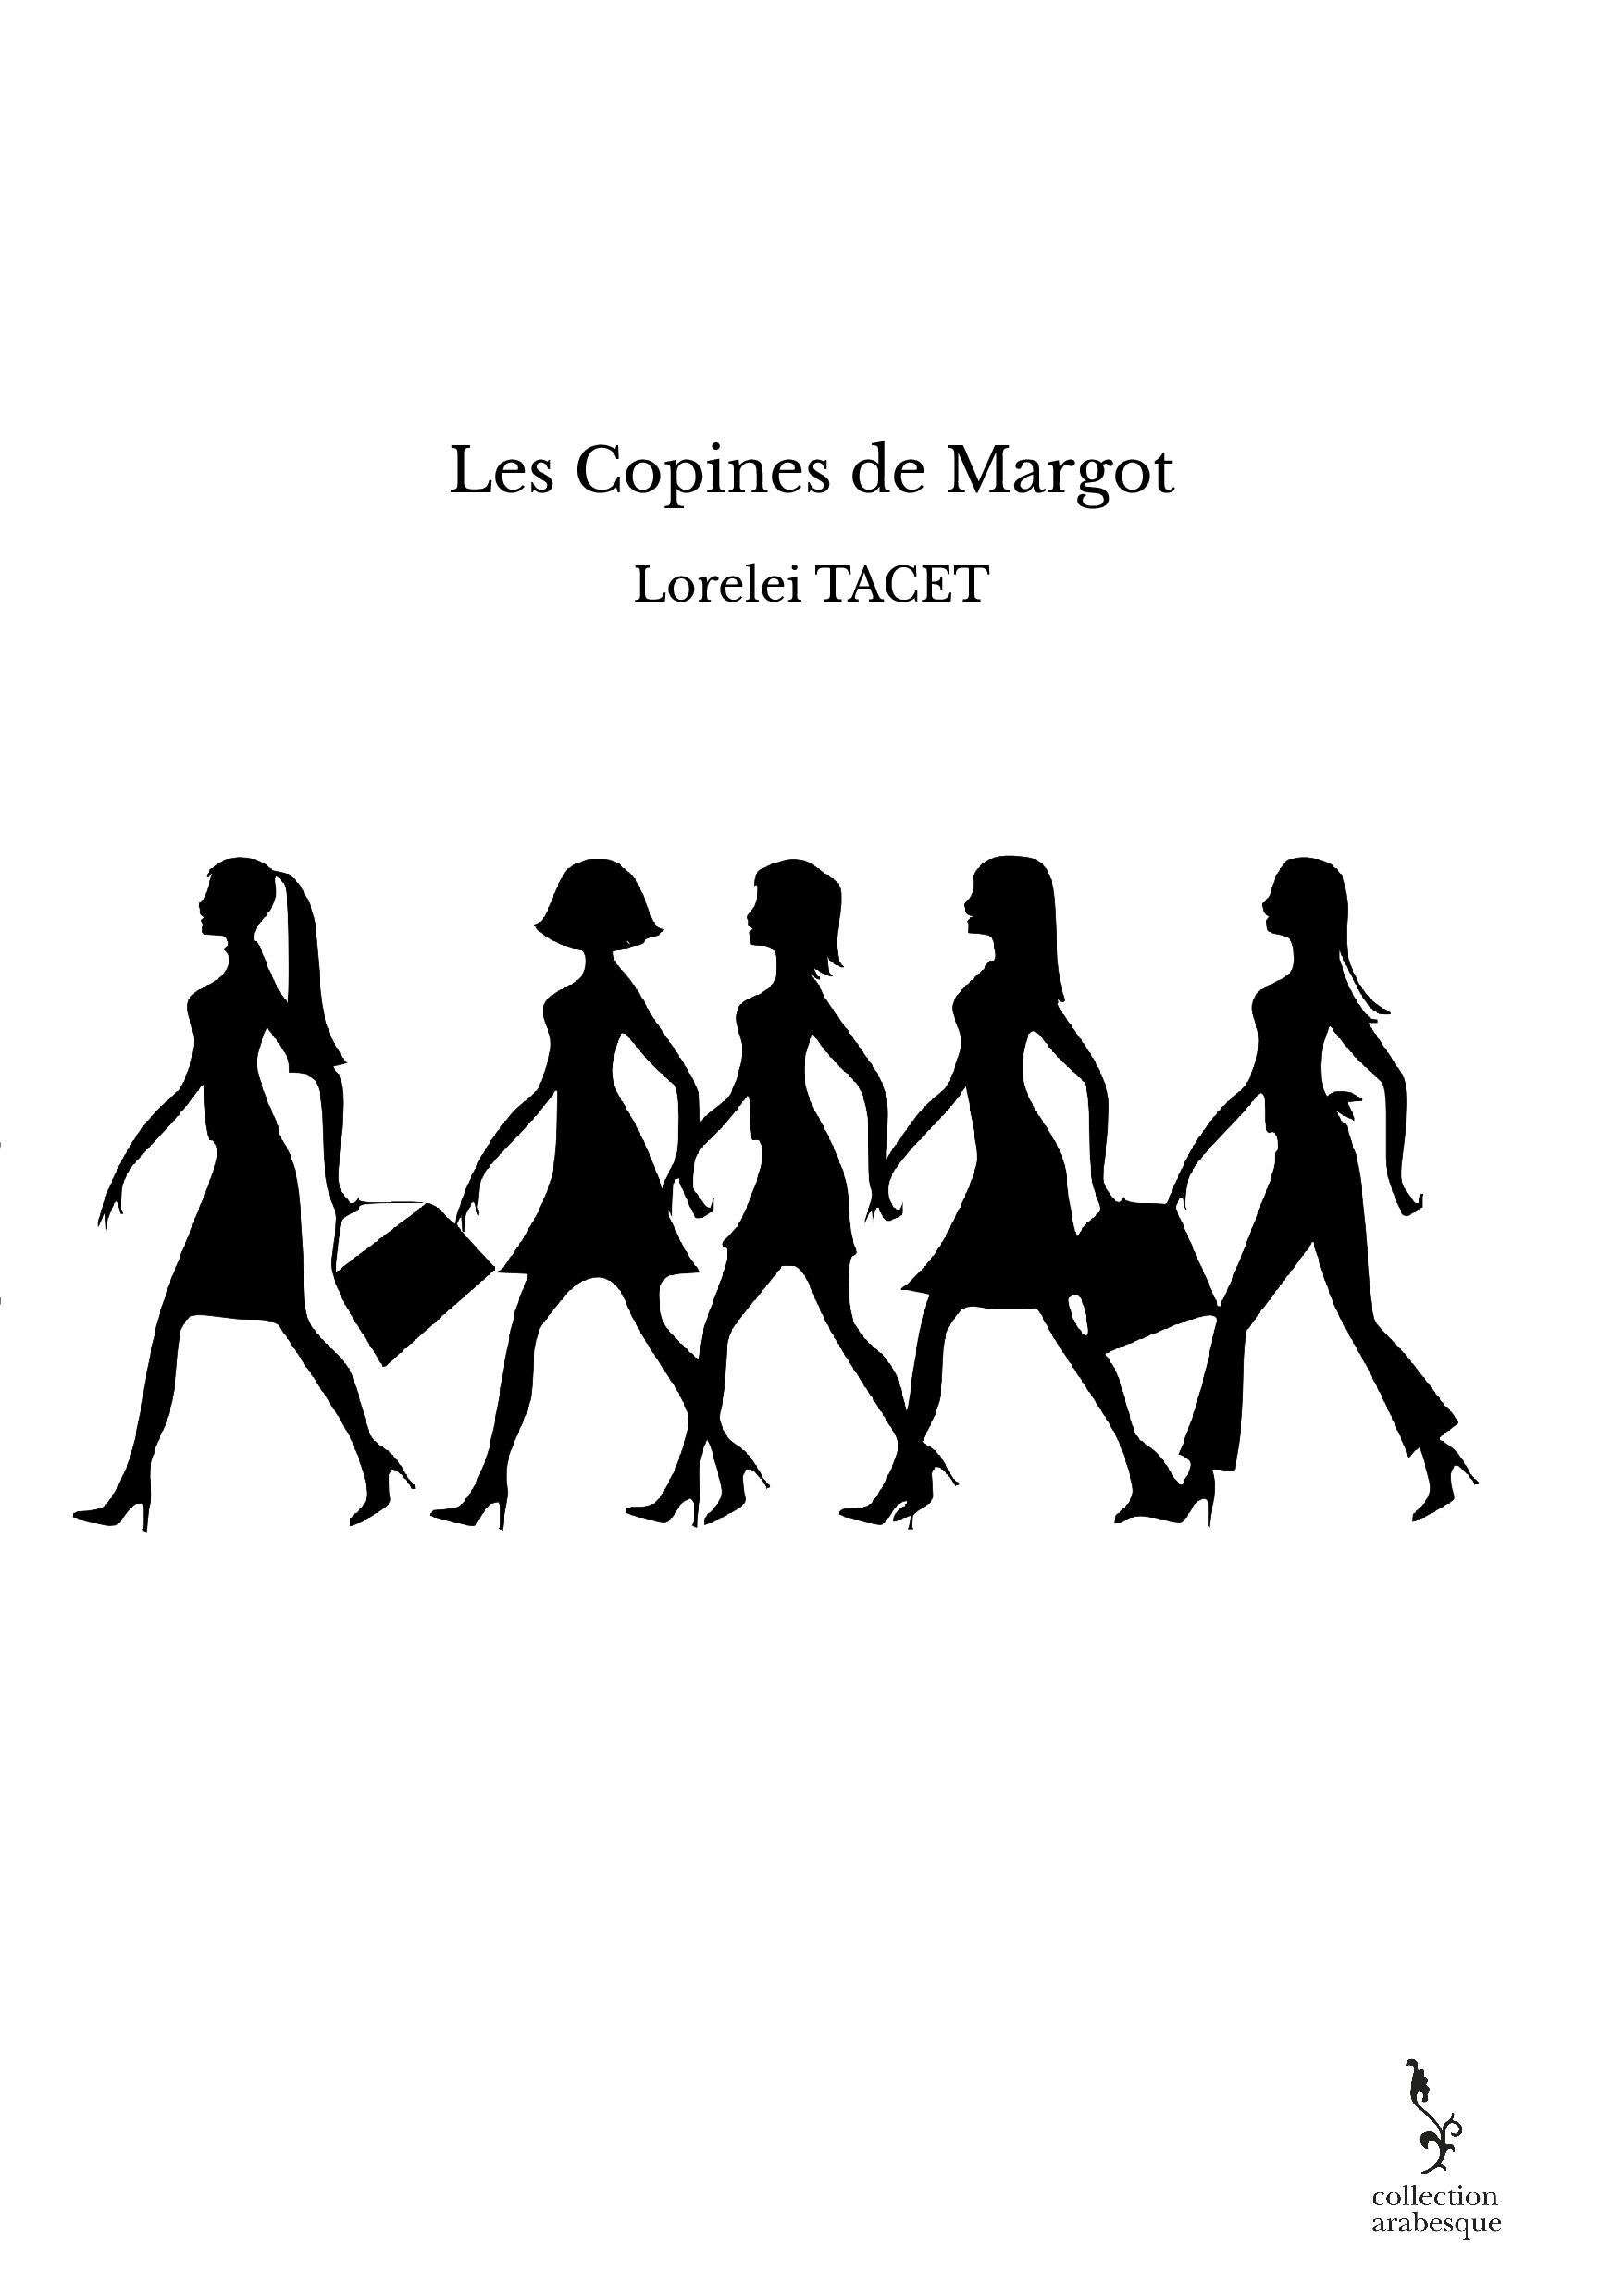 Les Copines de Margot